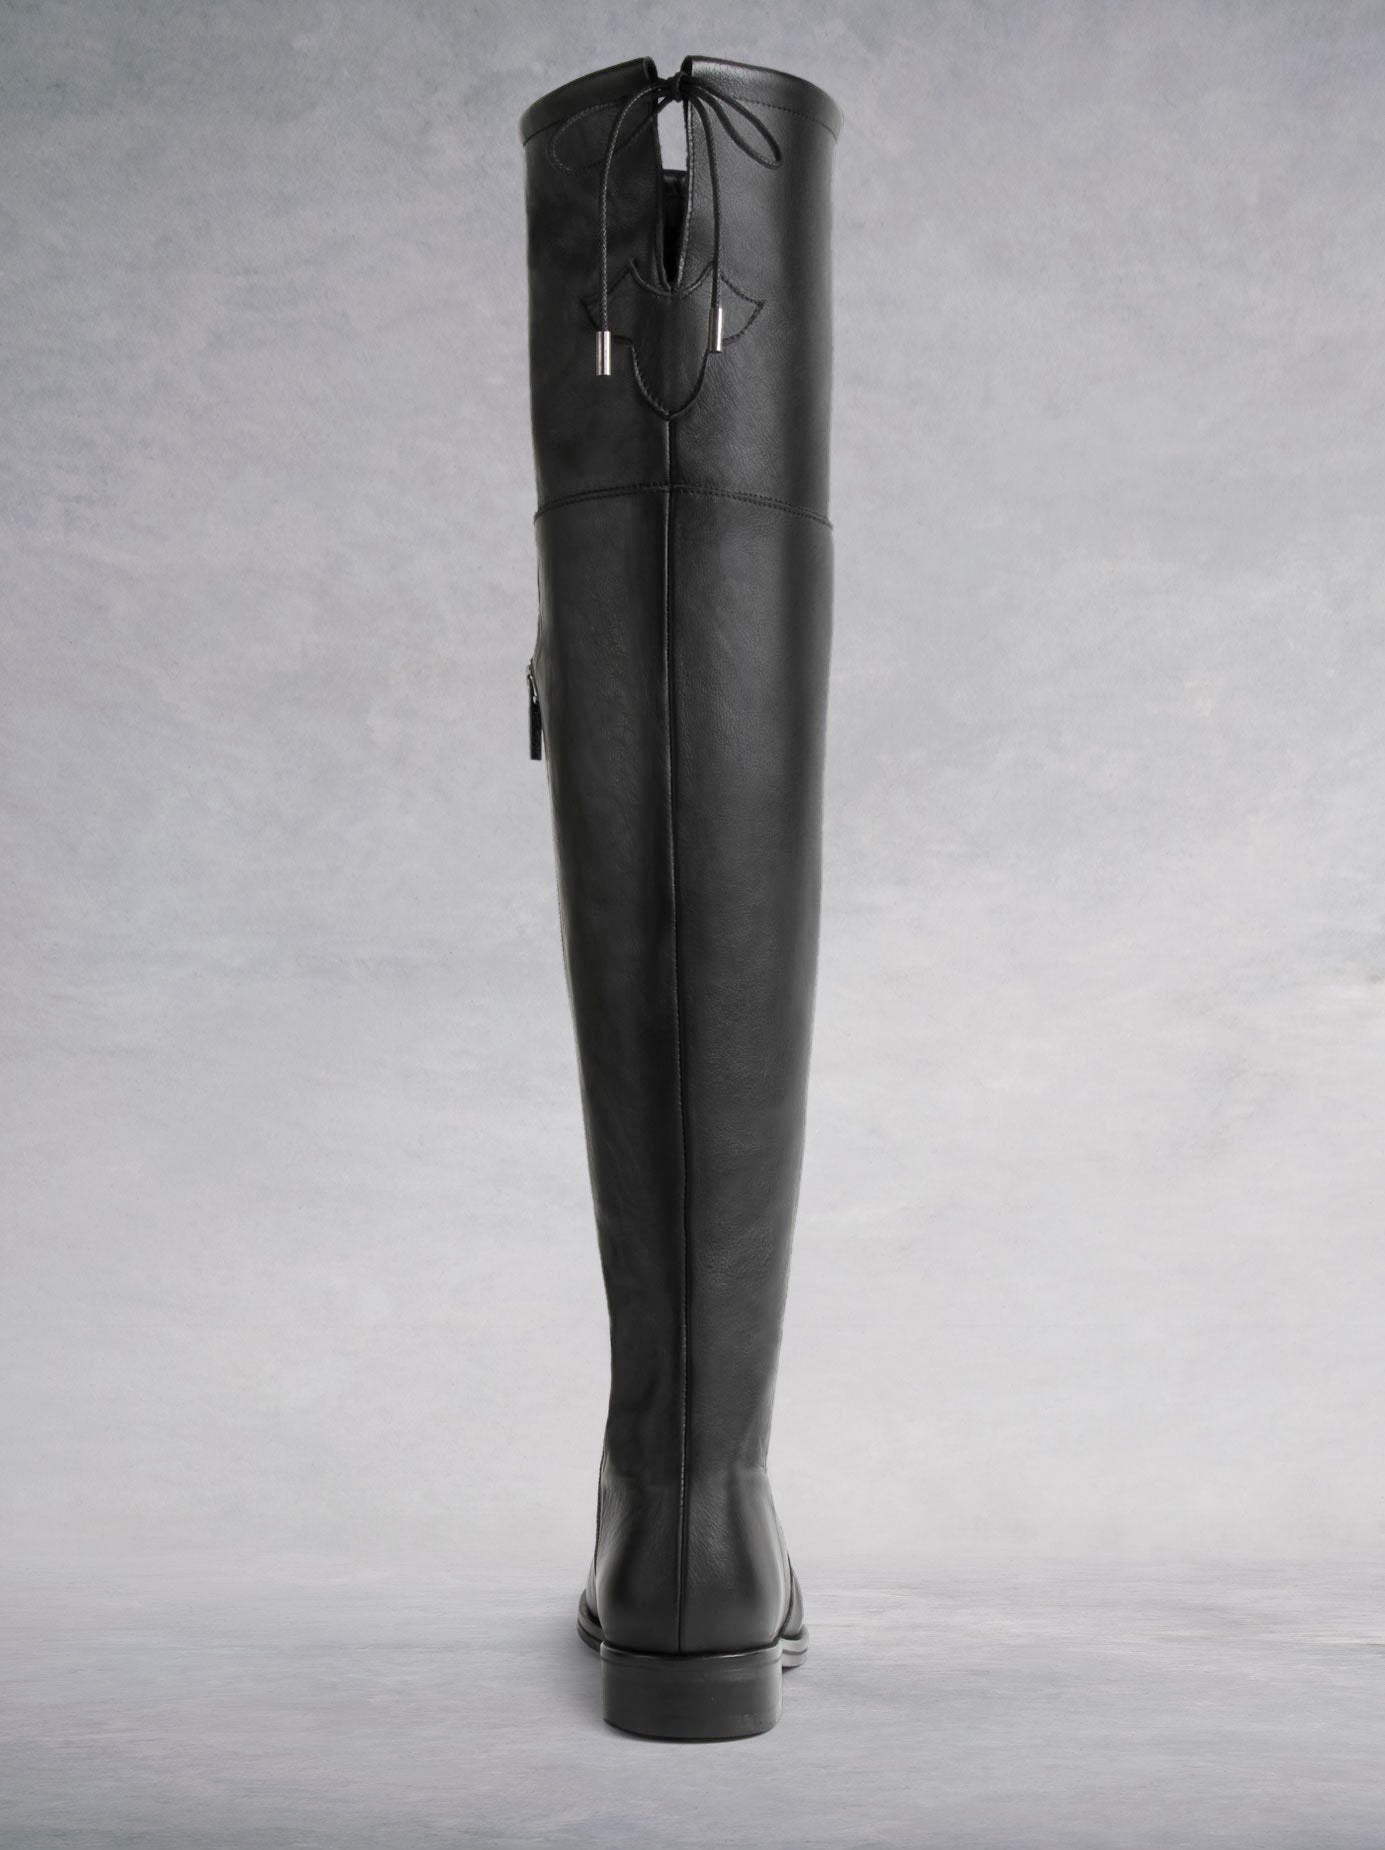 Fuller Black Leather - Over-the-knee boots with thick rubber sole - web exclusive.